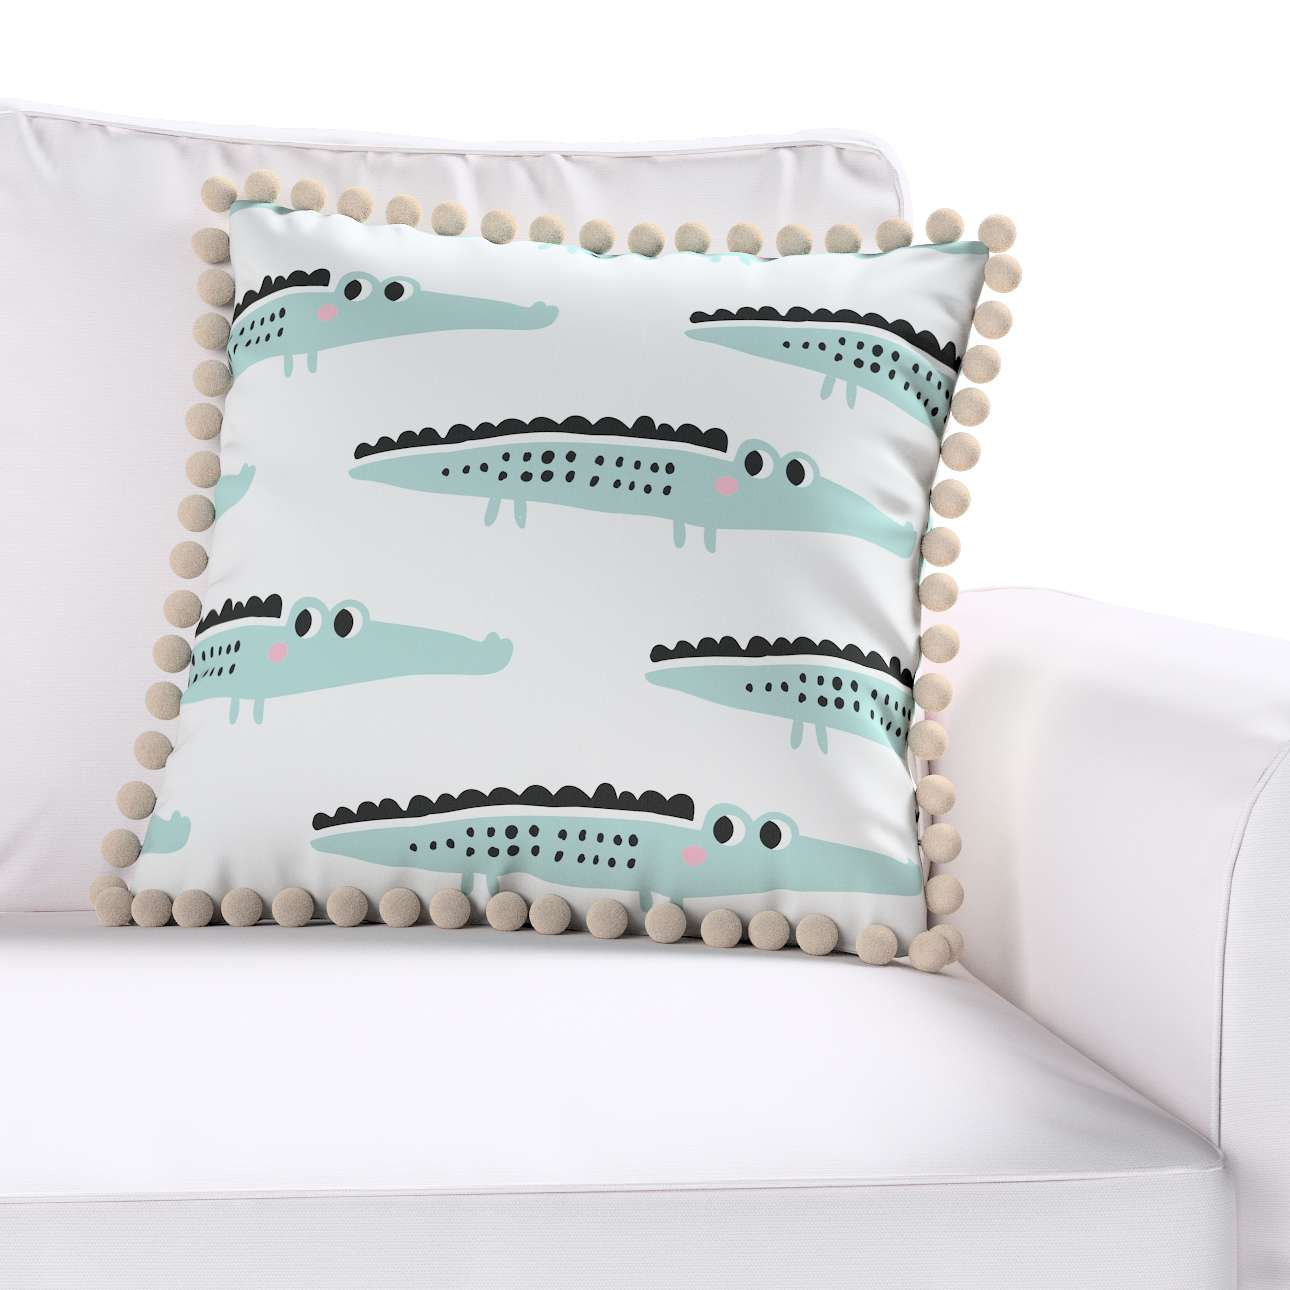 Daisy cushion covers with pom poms in collection Magic Collection, fabric: 500-11